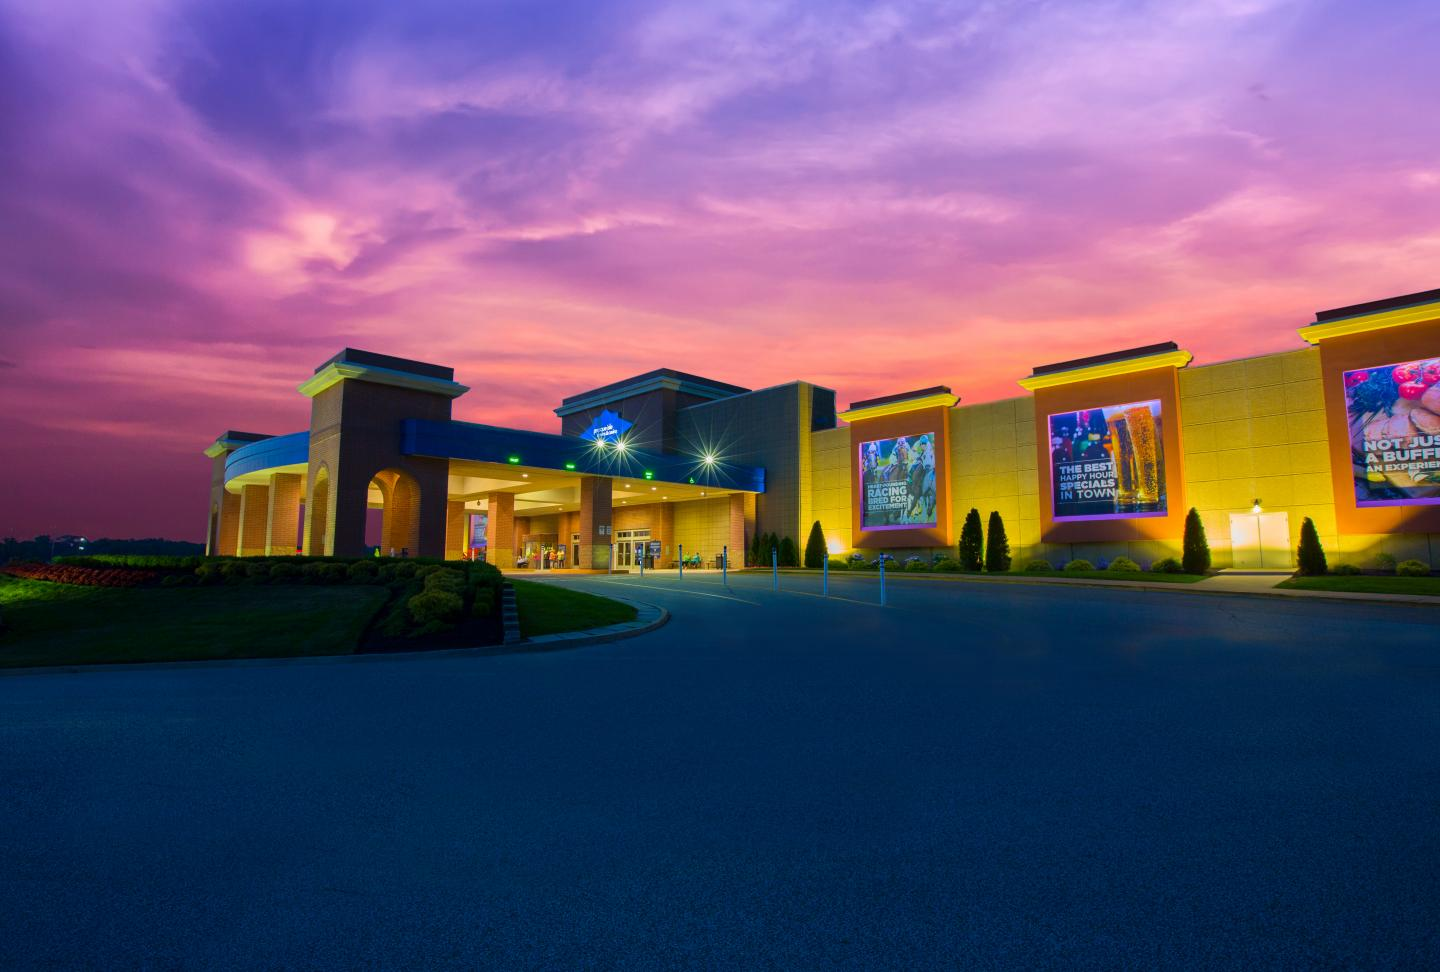 Exterior view of Presque Isle Downs & Casino